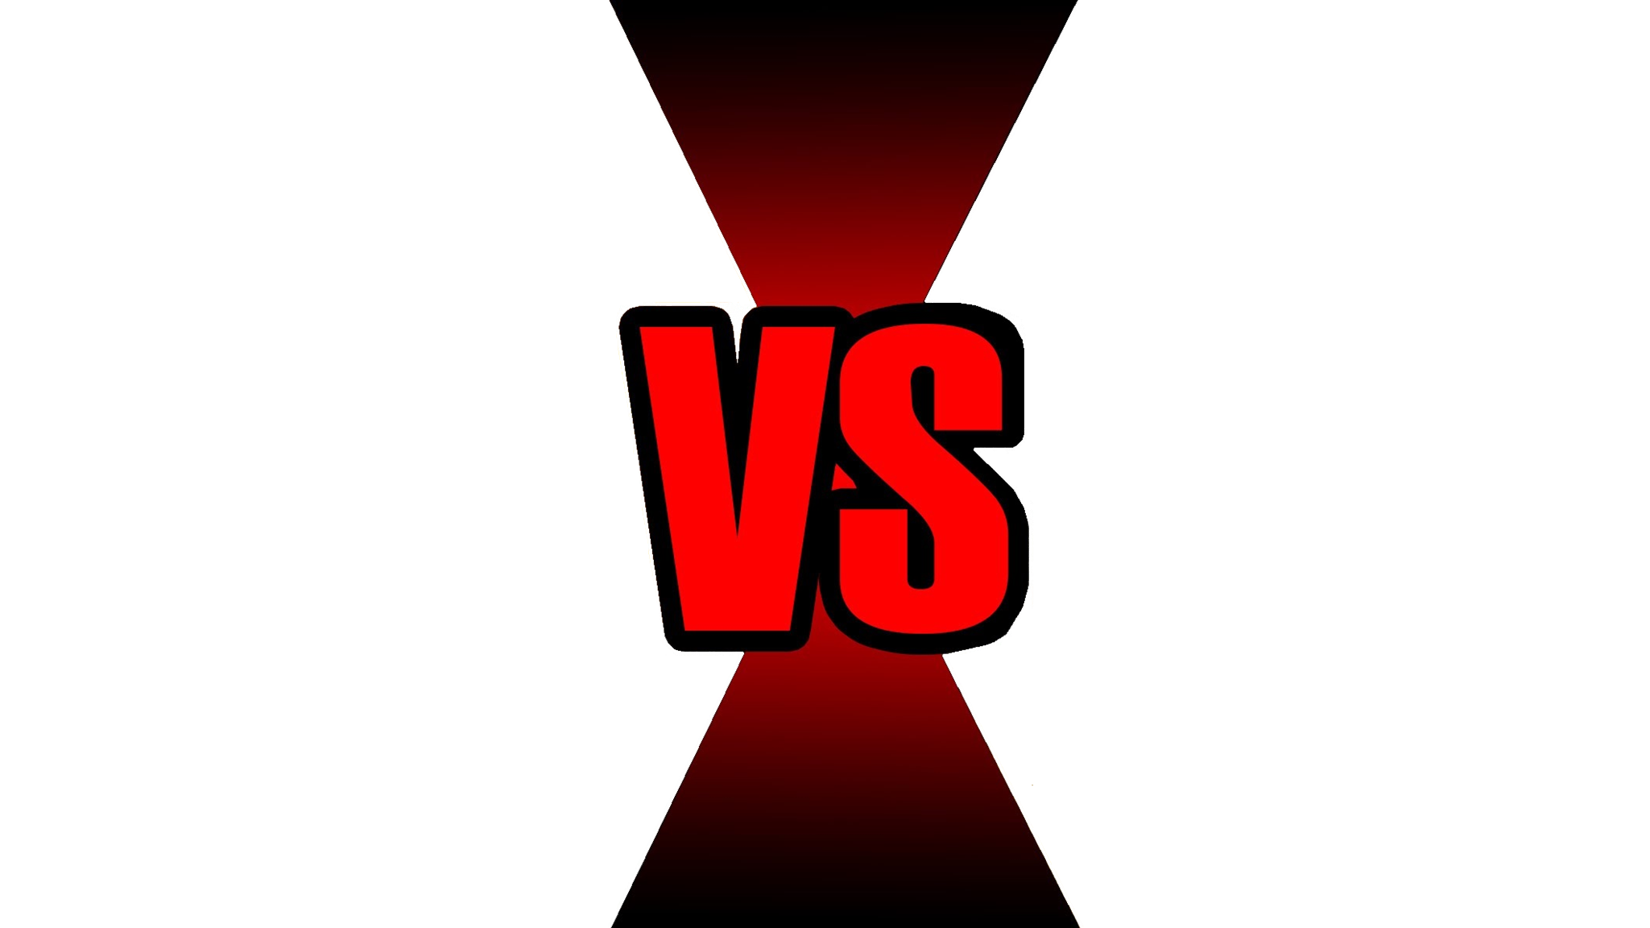 death resolution template - image extra death battle vs thumbnail